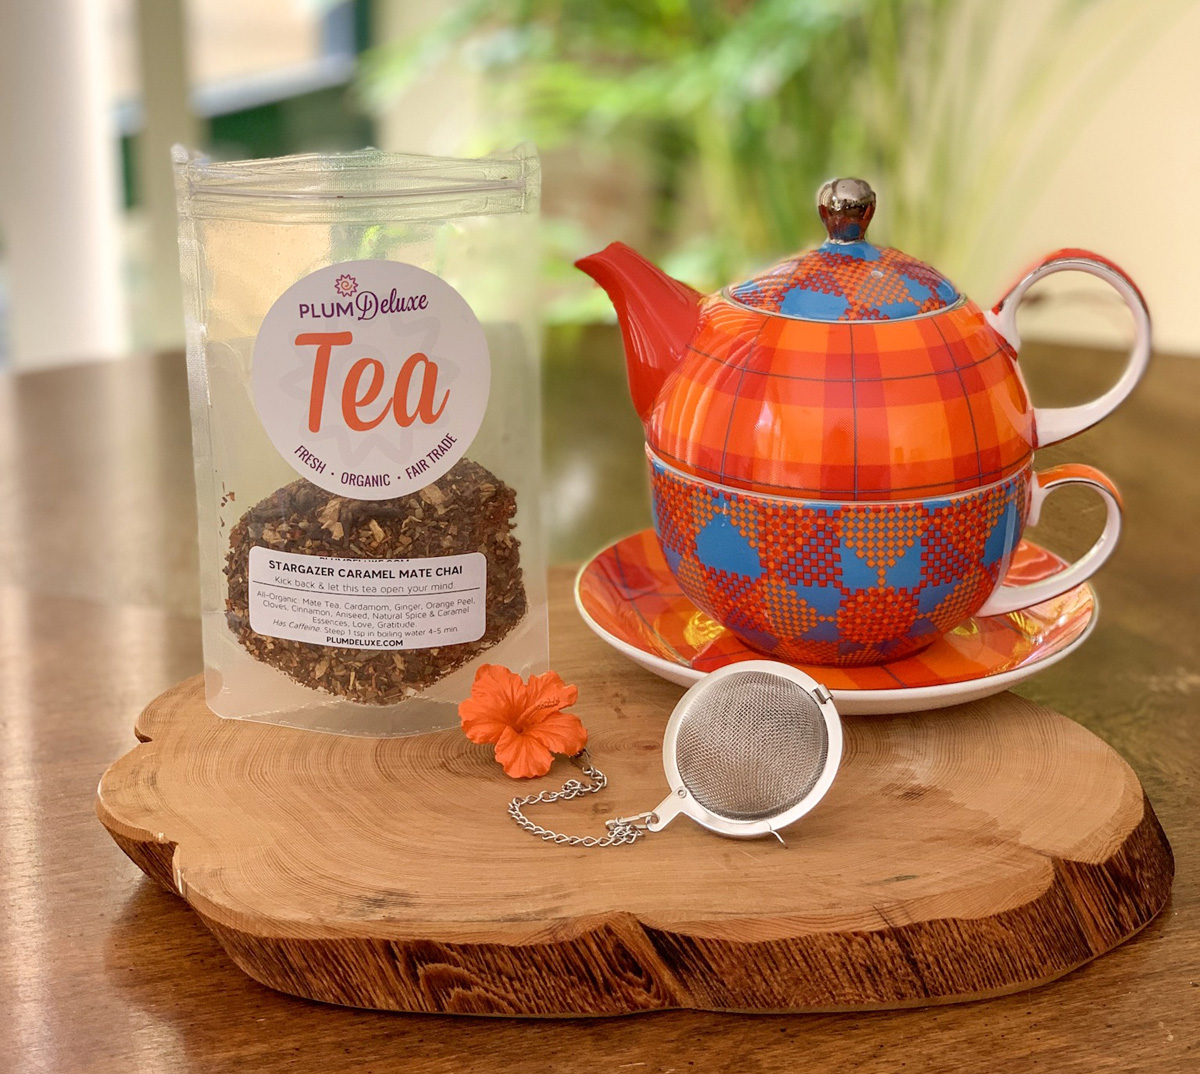 An orange and blue print teapot sits next to a bag of loose leaf herbal tea and a mesh tea ball infuser on a wooden slab.